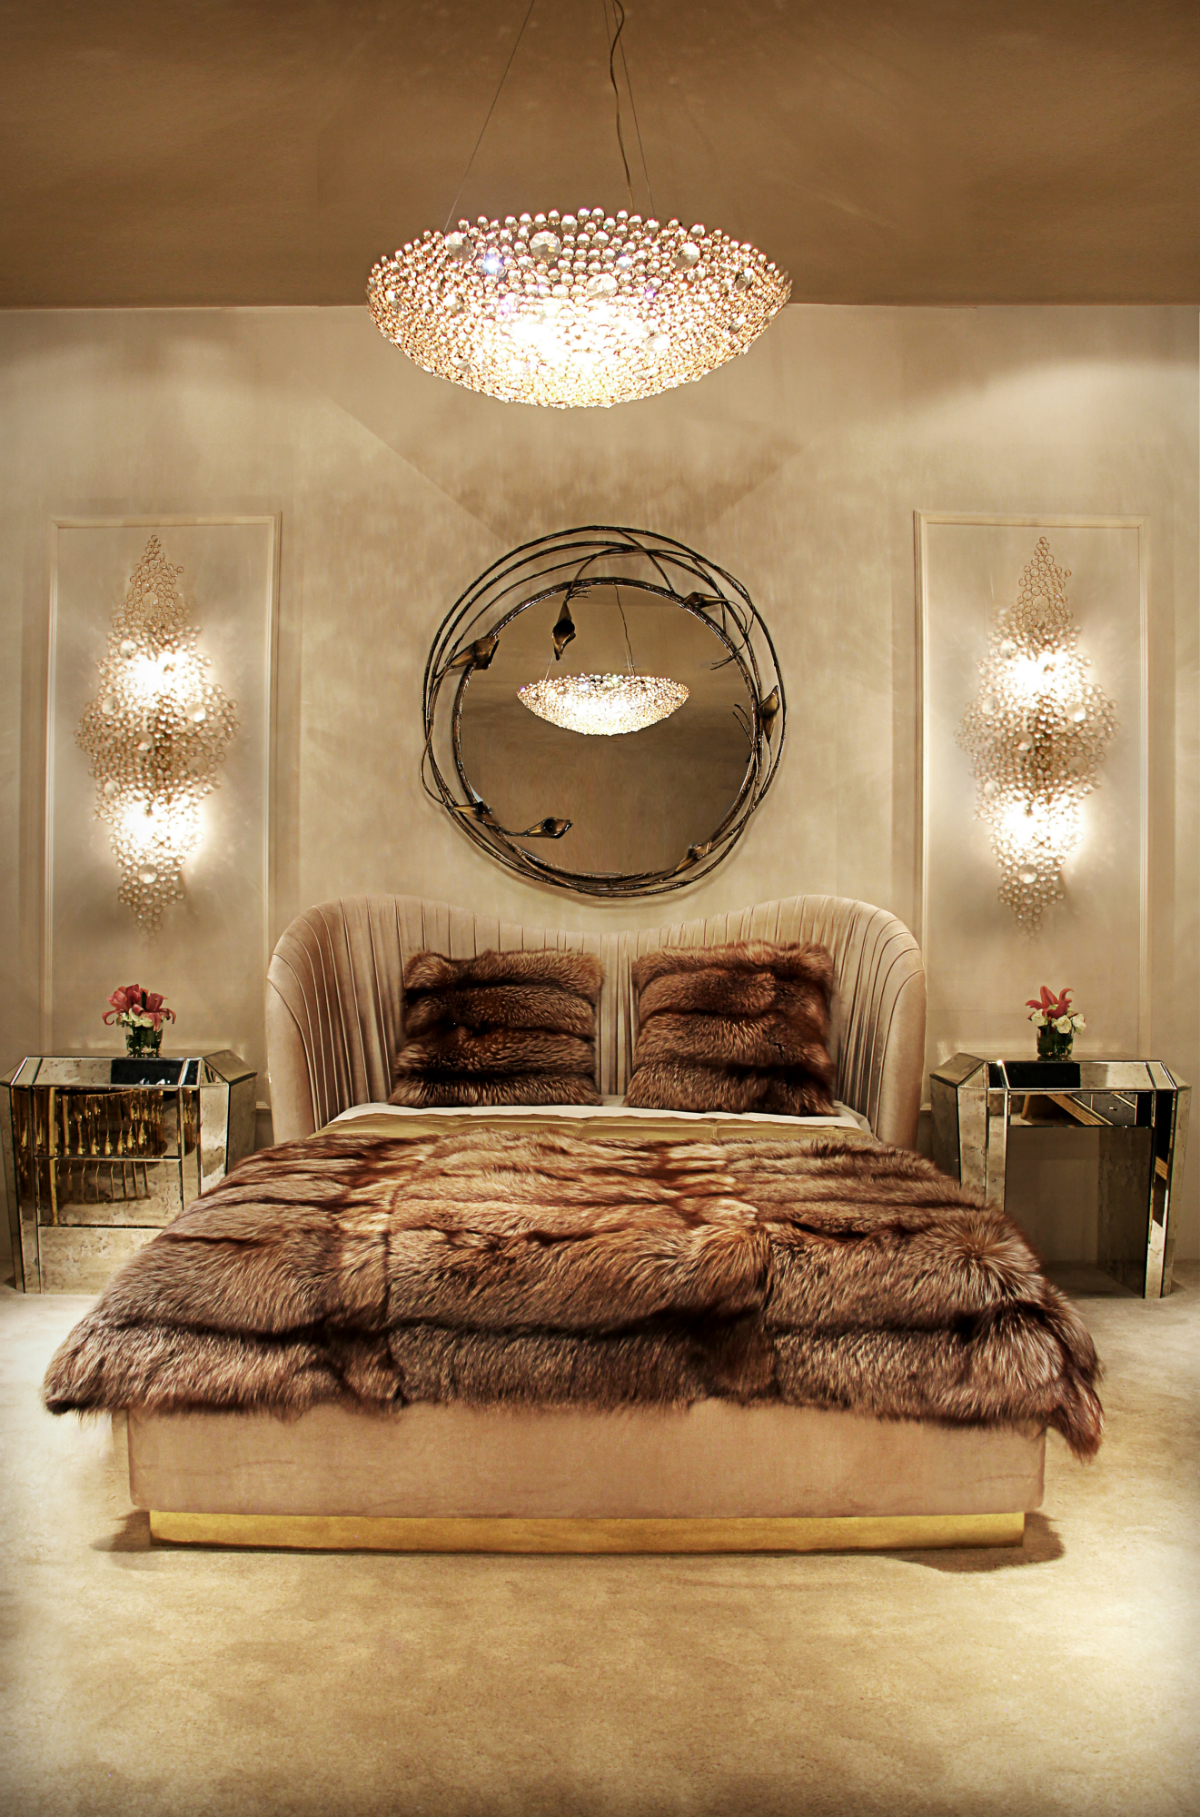 Bedroom Decor Ideas You Will Want to Sleep In bedroom design ideas Bedroom Design Ideas You Will Want to Sleep In Bedroom Design Ideas You Will Want to Sleep In 8